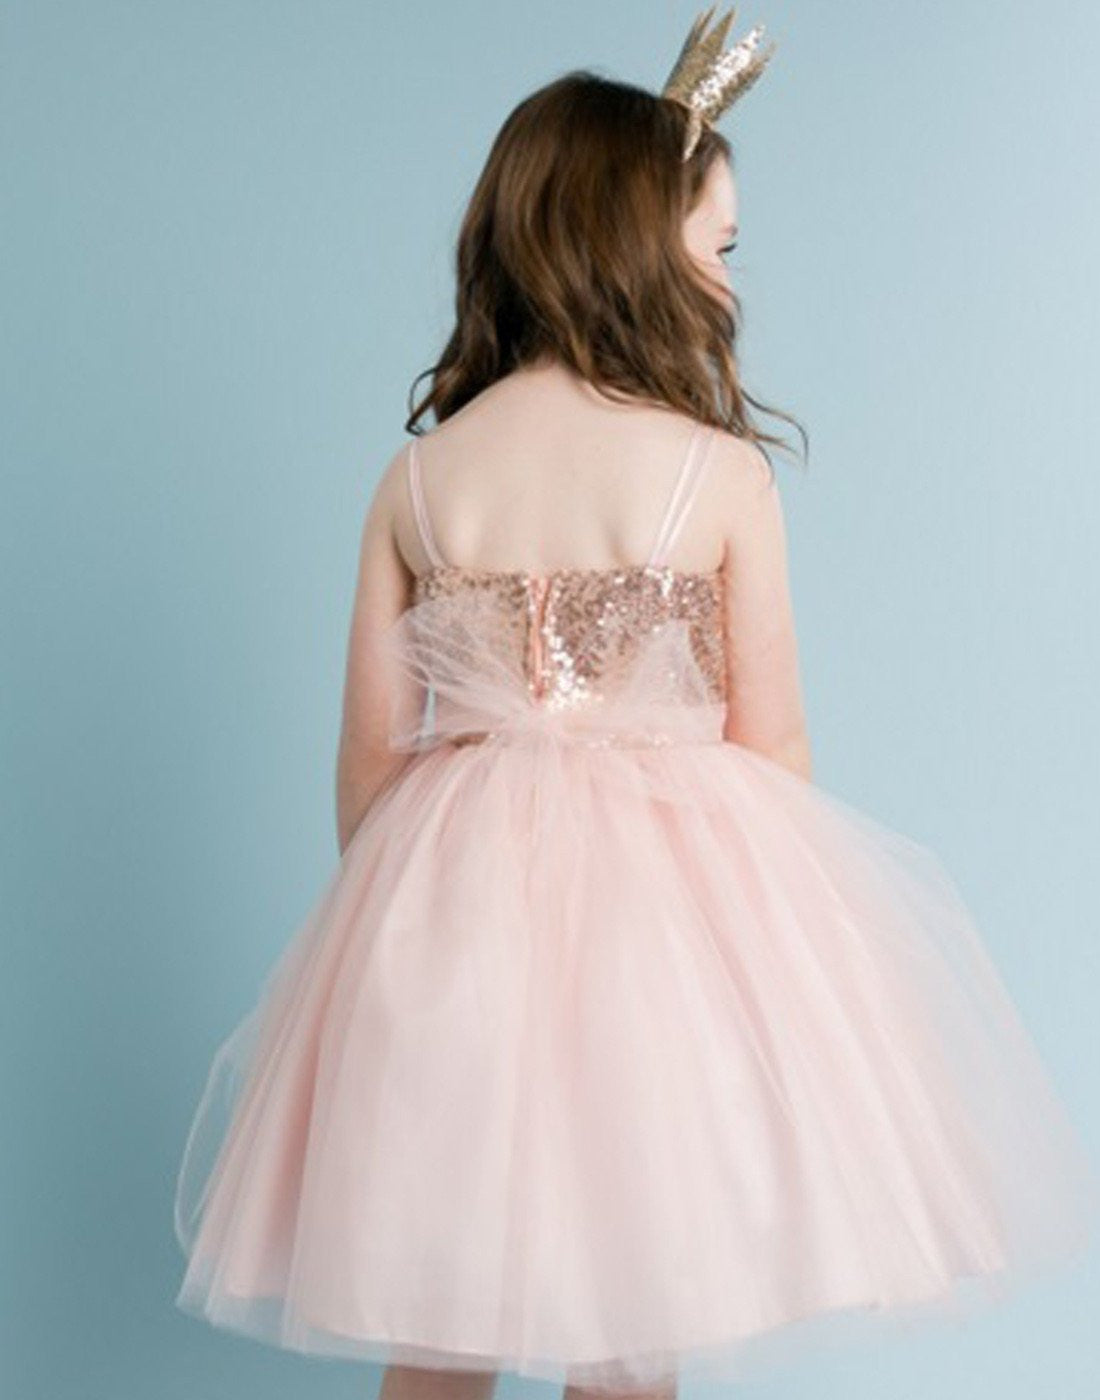 Twinkling Sequined Bodice and Tulle Overlay Skirt Dress - Blush ...